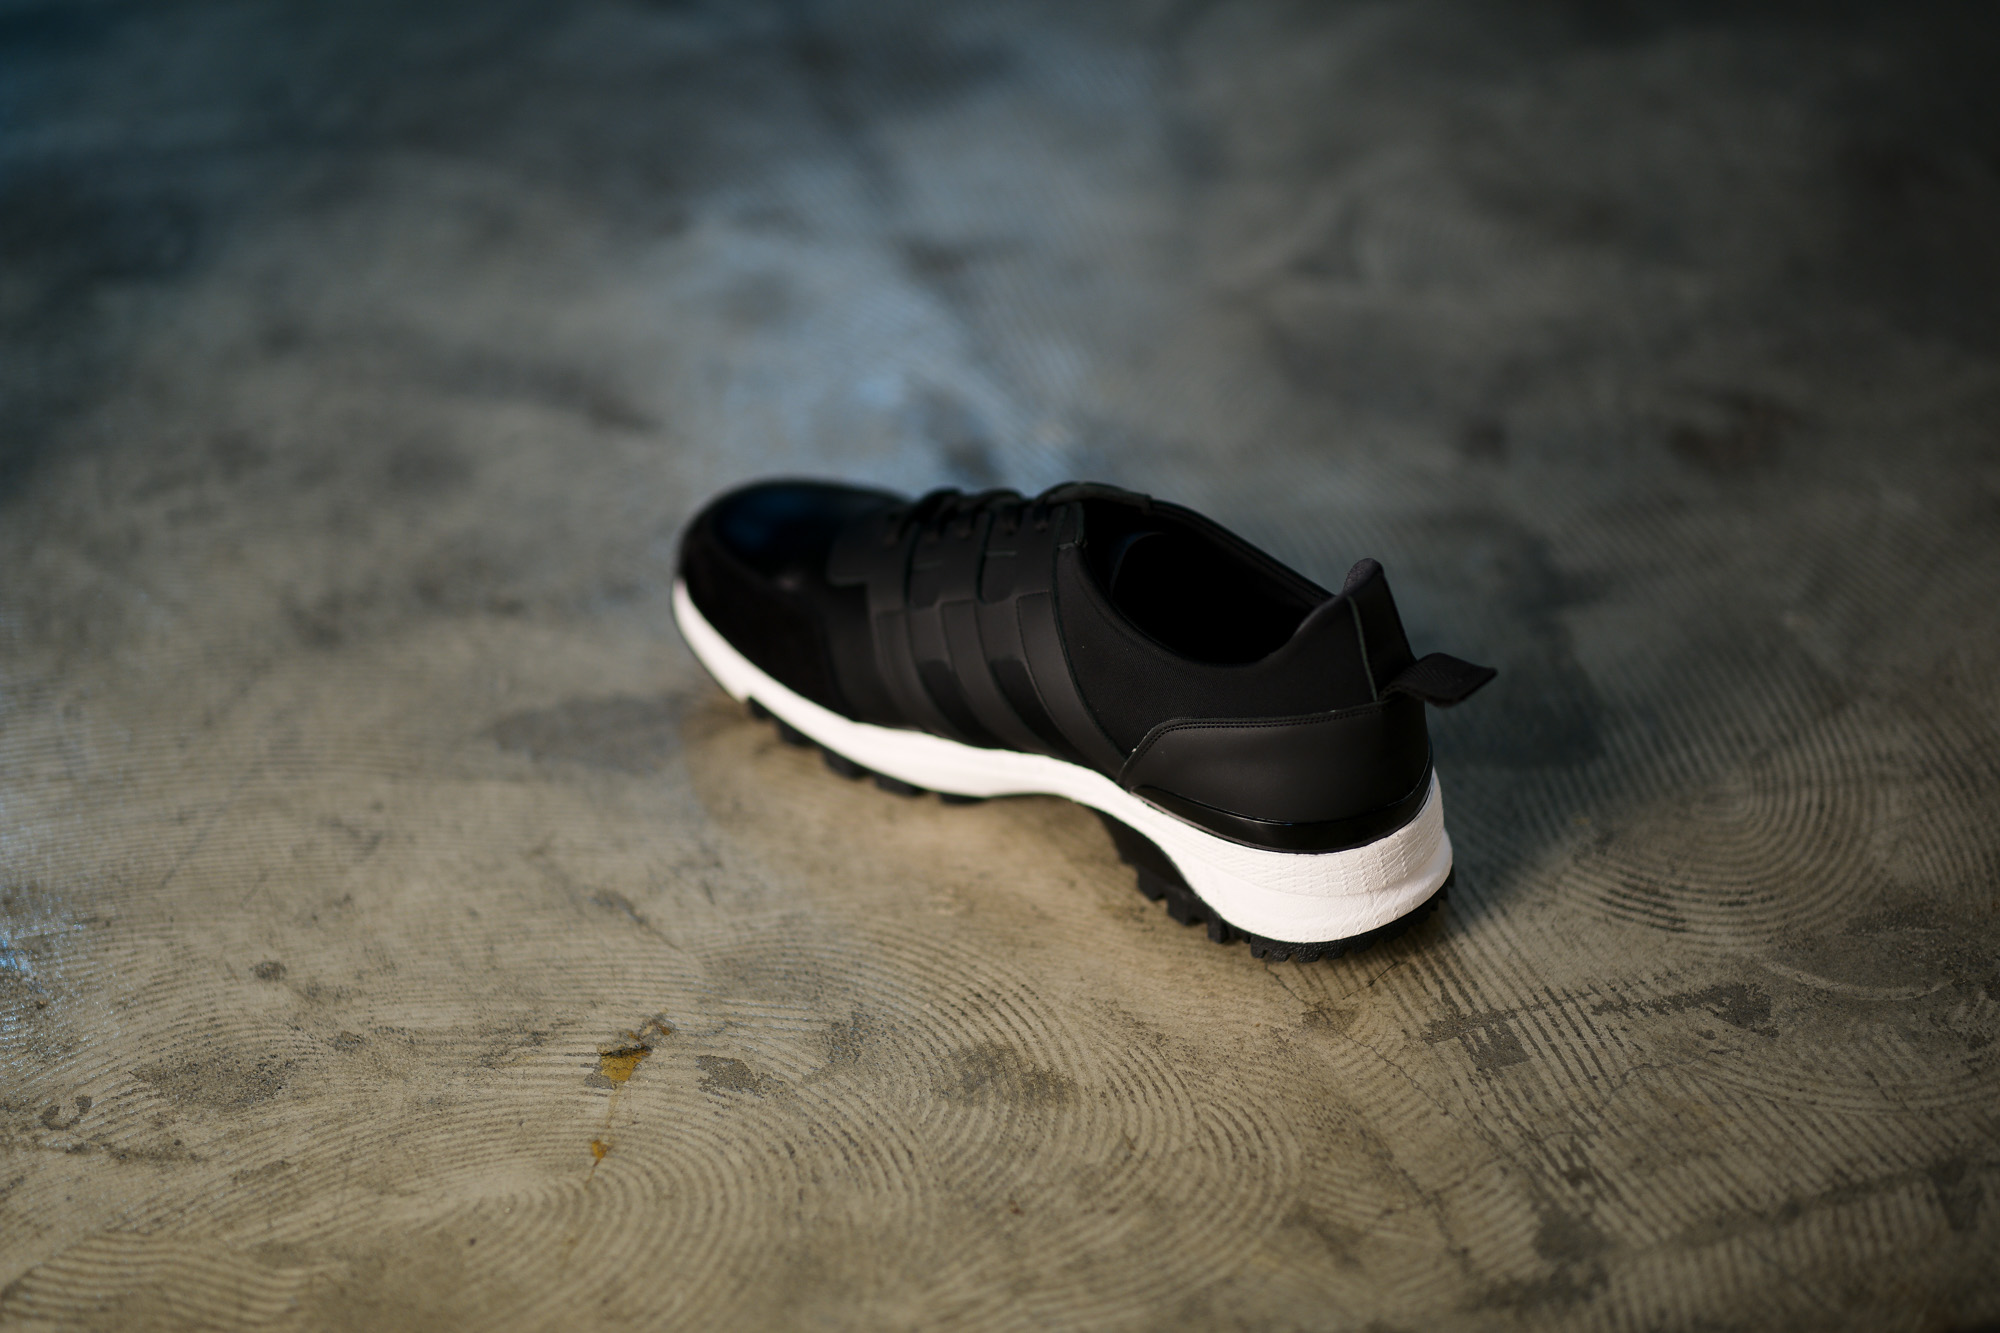 WH (ダブルエイチ) WH-0111 Faster Last(ファスターラスト) Sneakers スニーカー BLACK×WHITE (ブラック×ホワイト) MADE IN JAPAN (日本製) 2019 秋冬【ご予約受付開始】 愛知 名古屋 alto e diritto altoediritto アルトエデリット